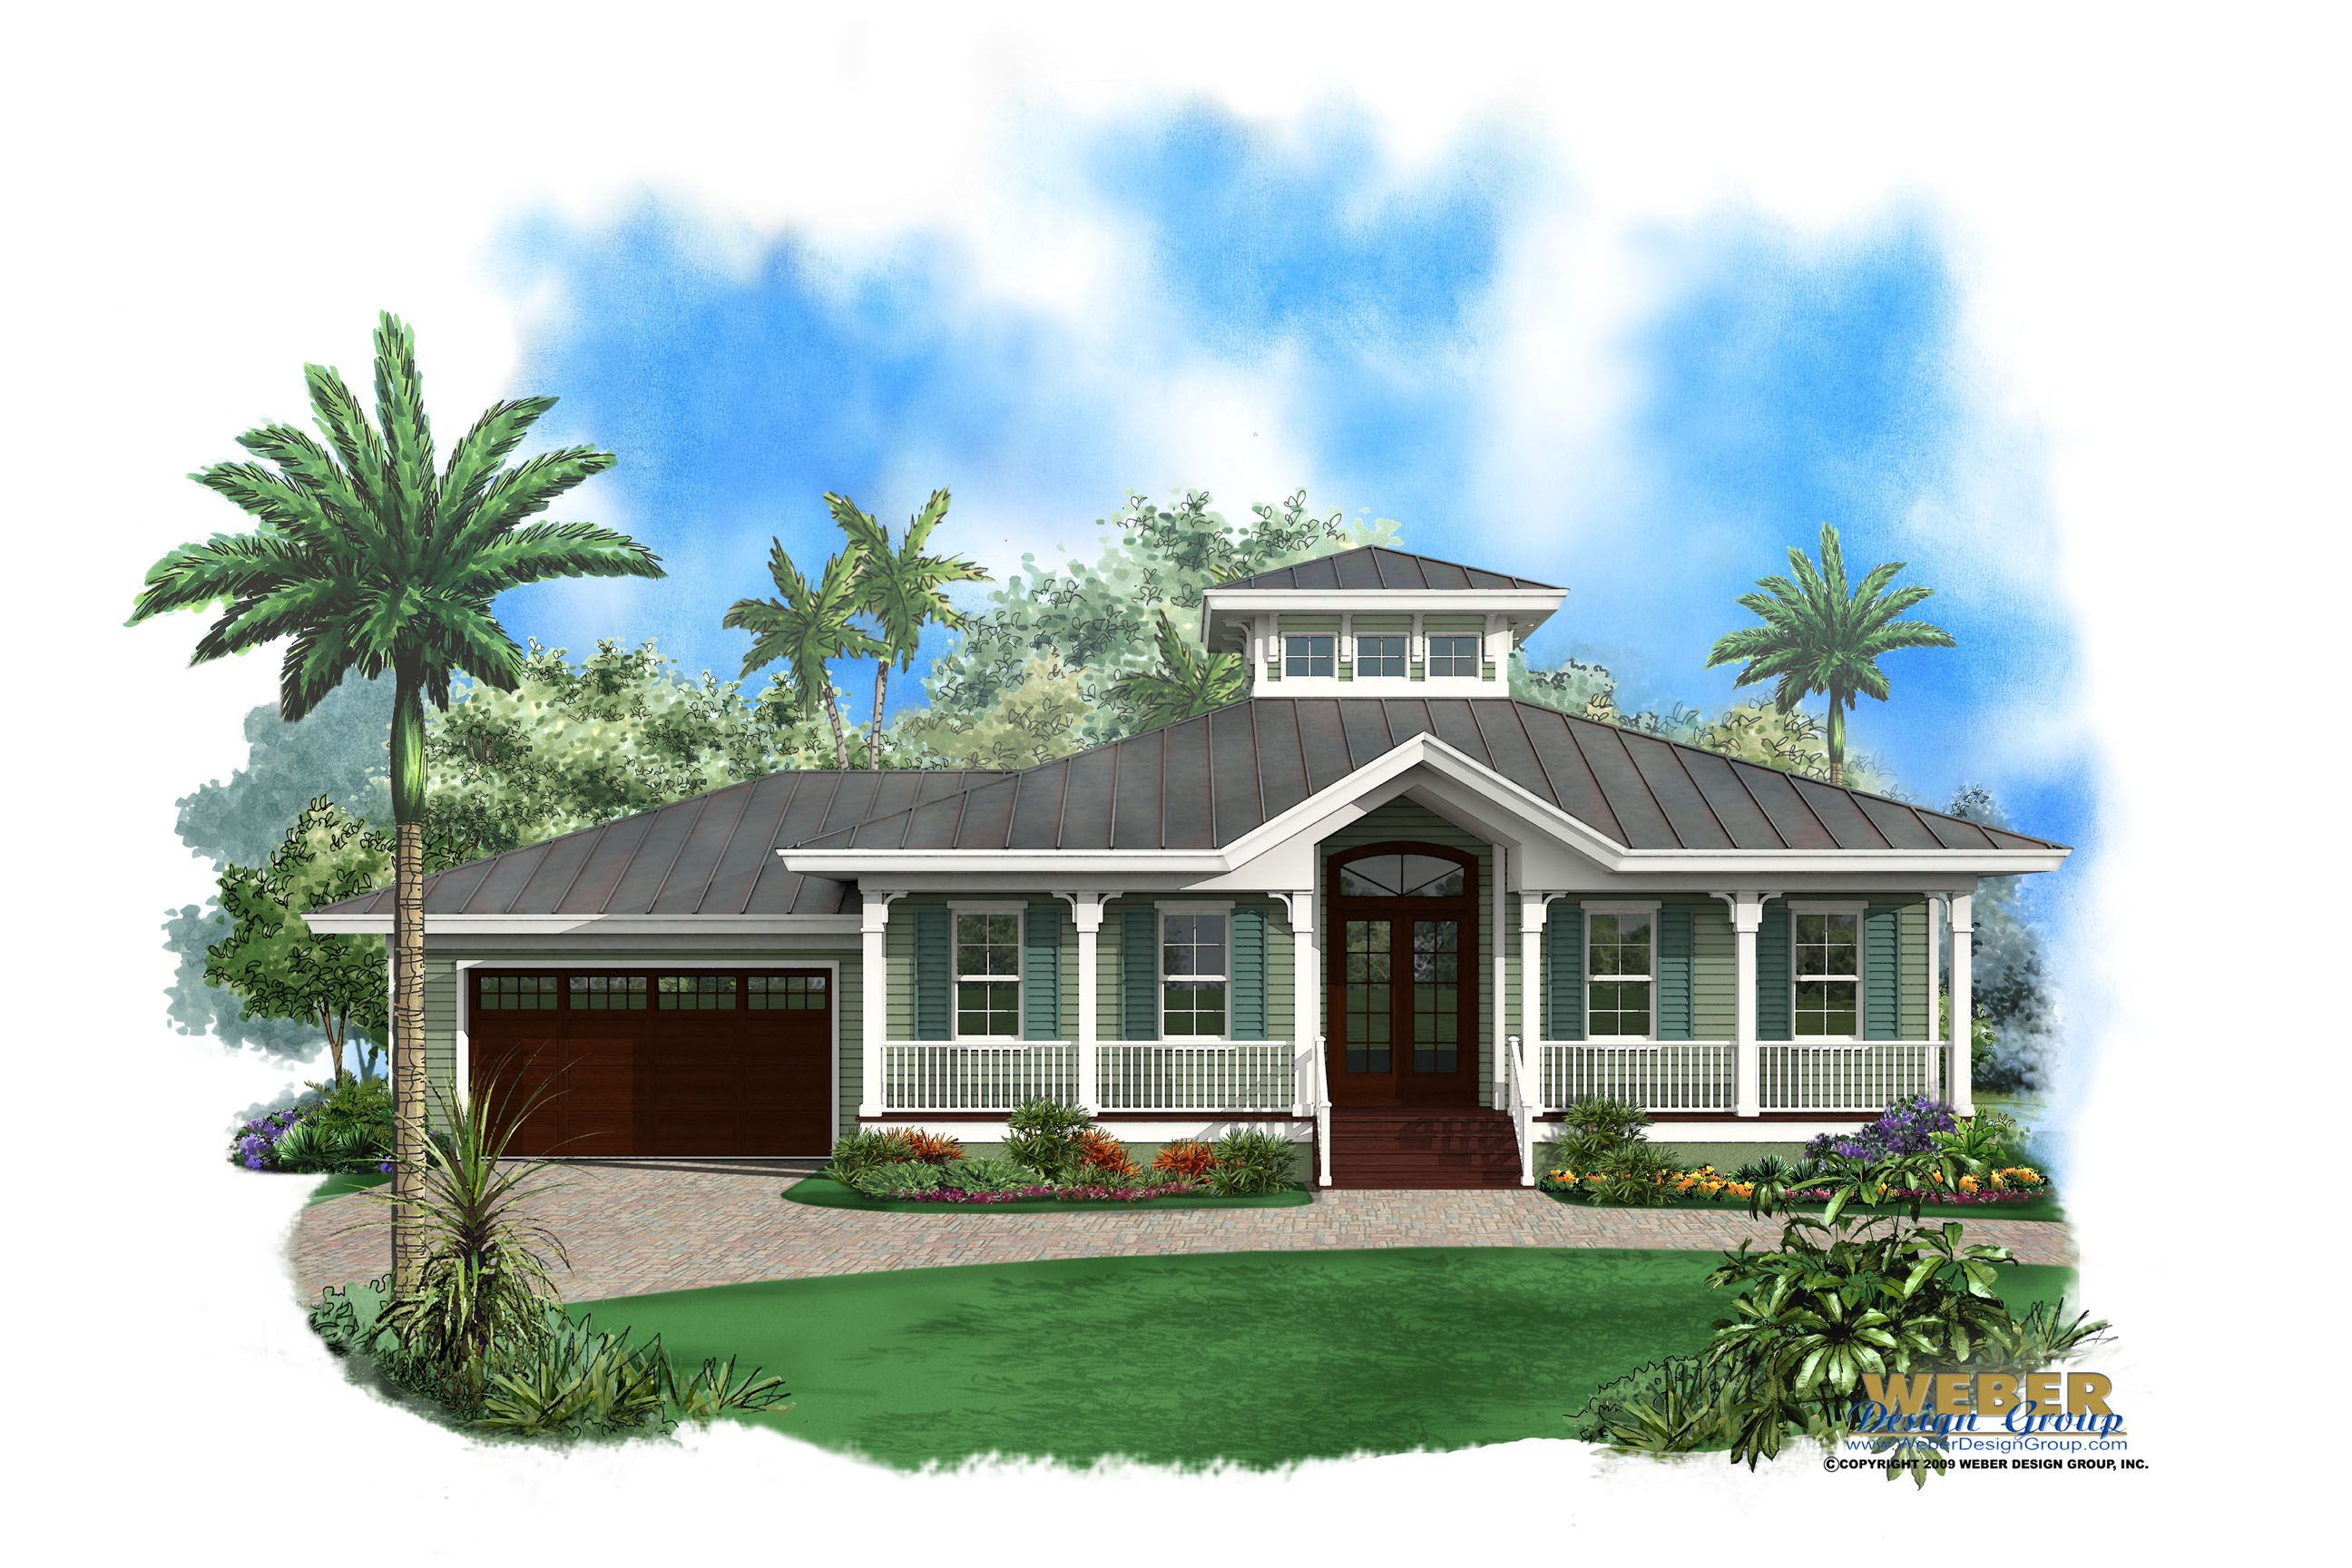 Key west house plans google search key west house plans pinterest key west story house for Key west style house plans